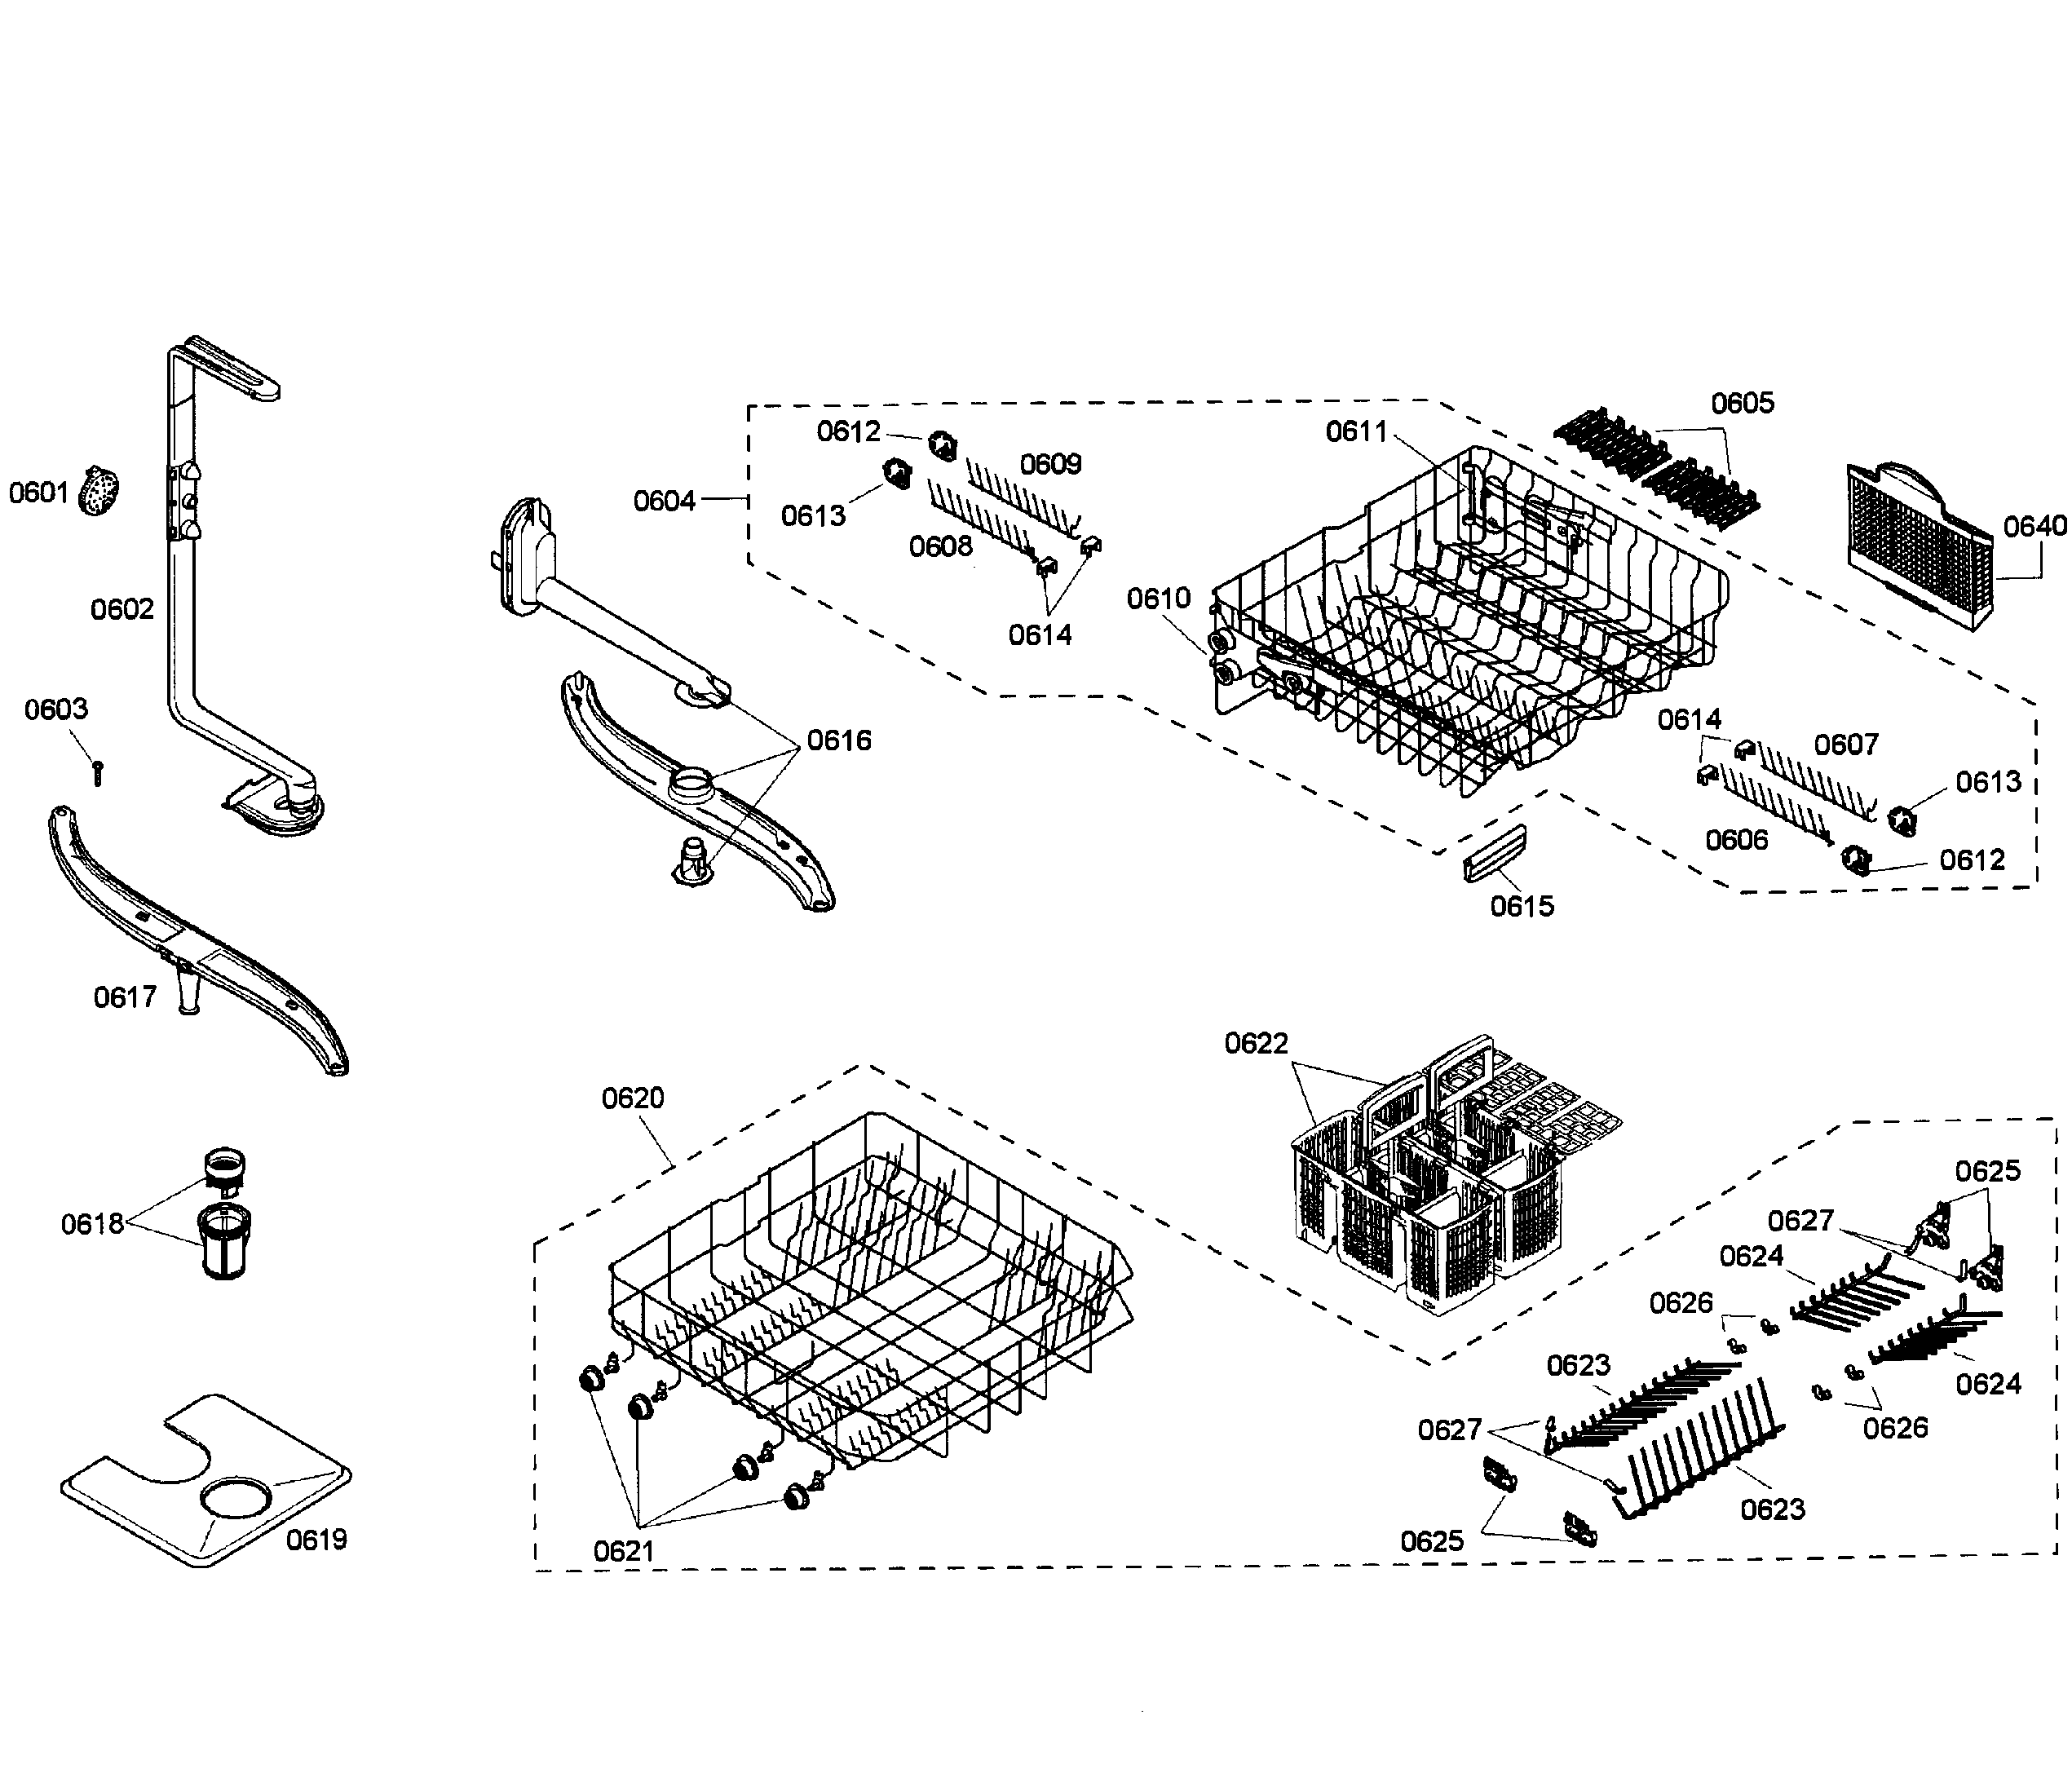 BASKETS Diagram & Parts List for Model SHE55C05UC50 Bosch